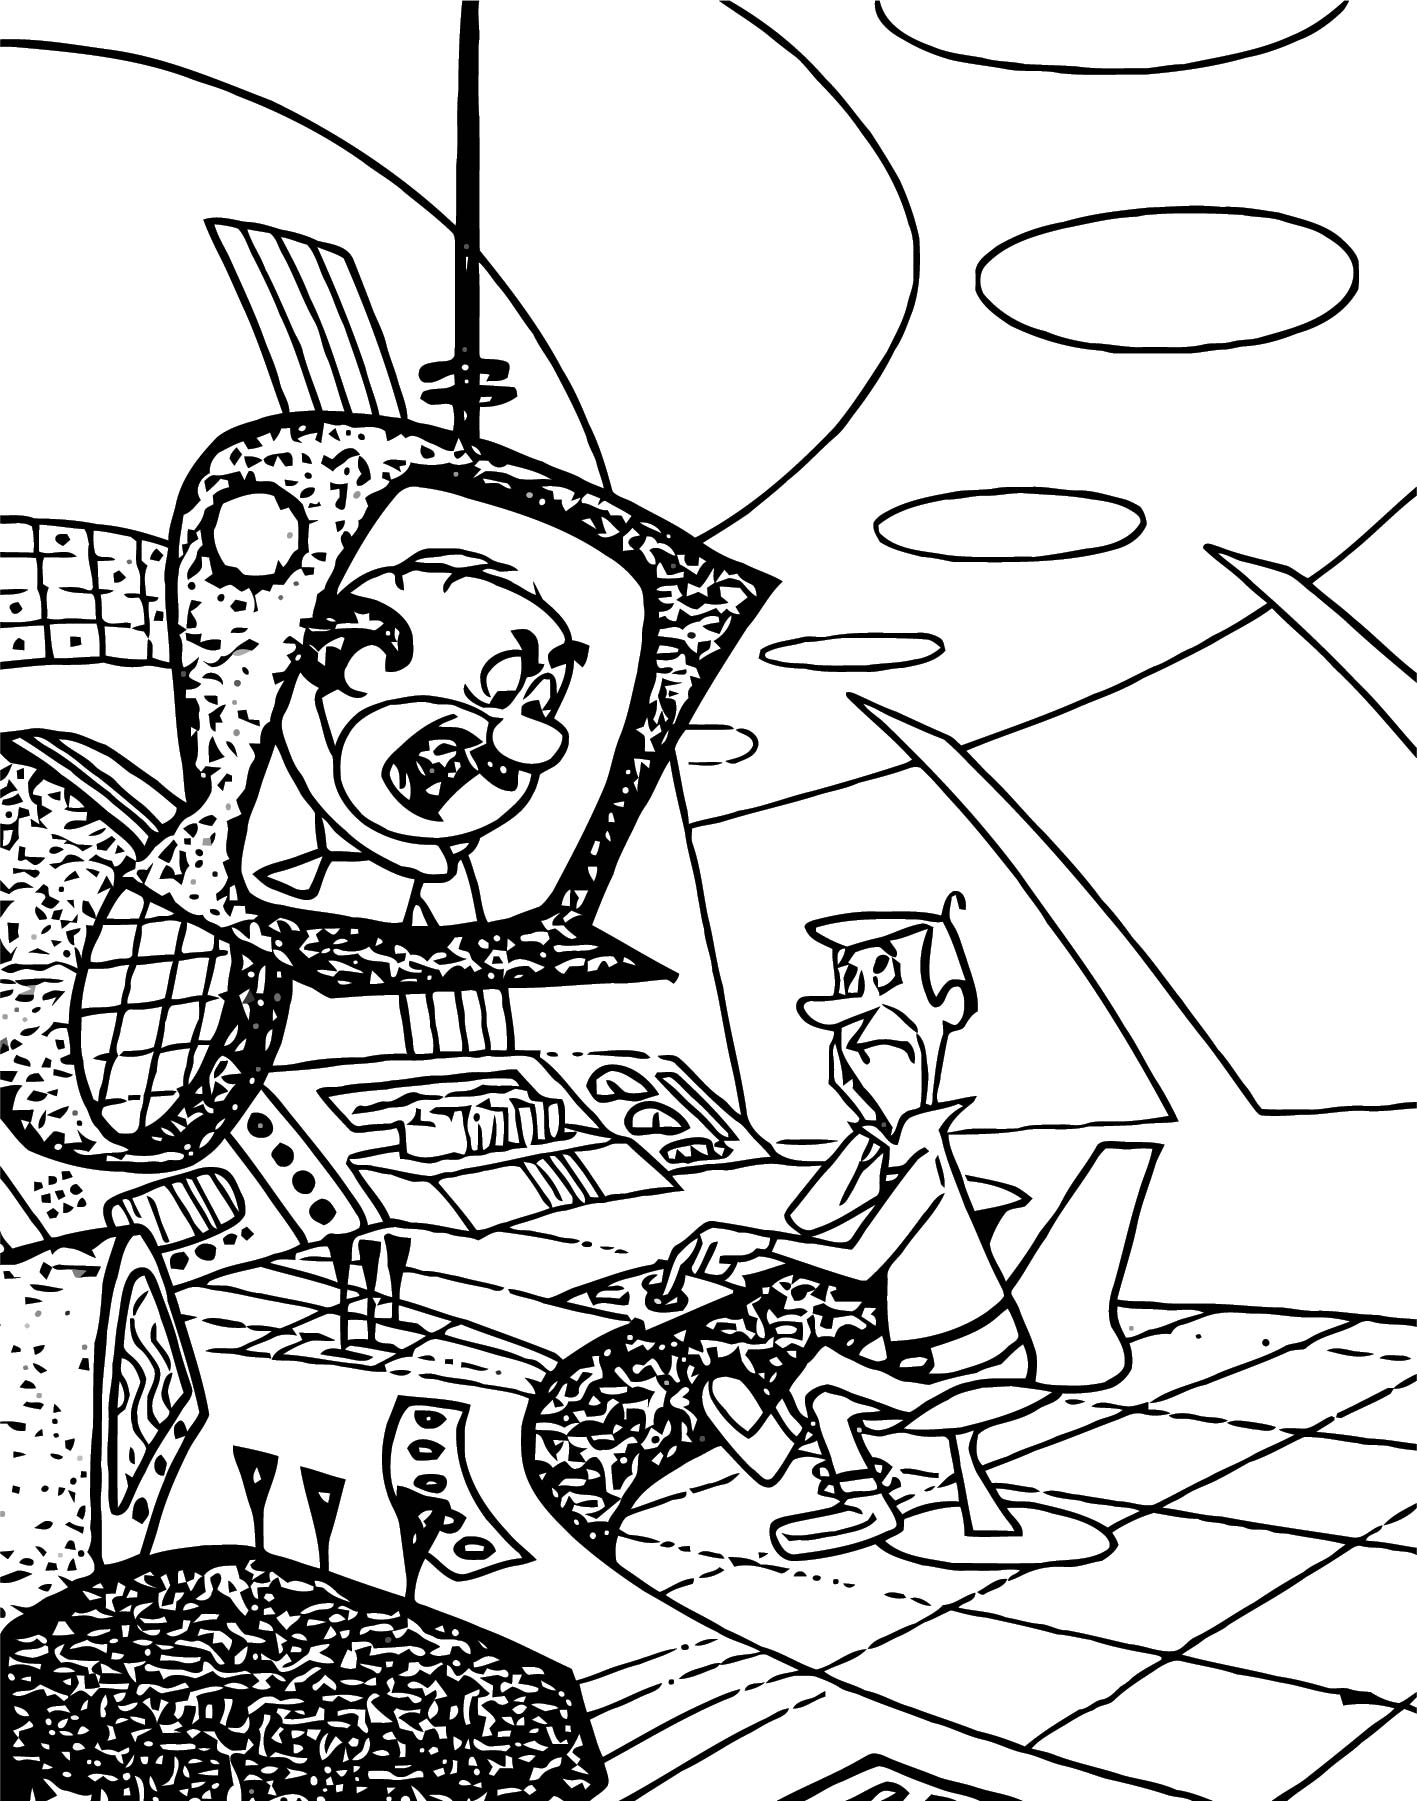 Jetsons 9 Coloring Page Wecoloringpage